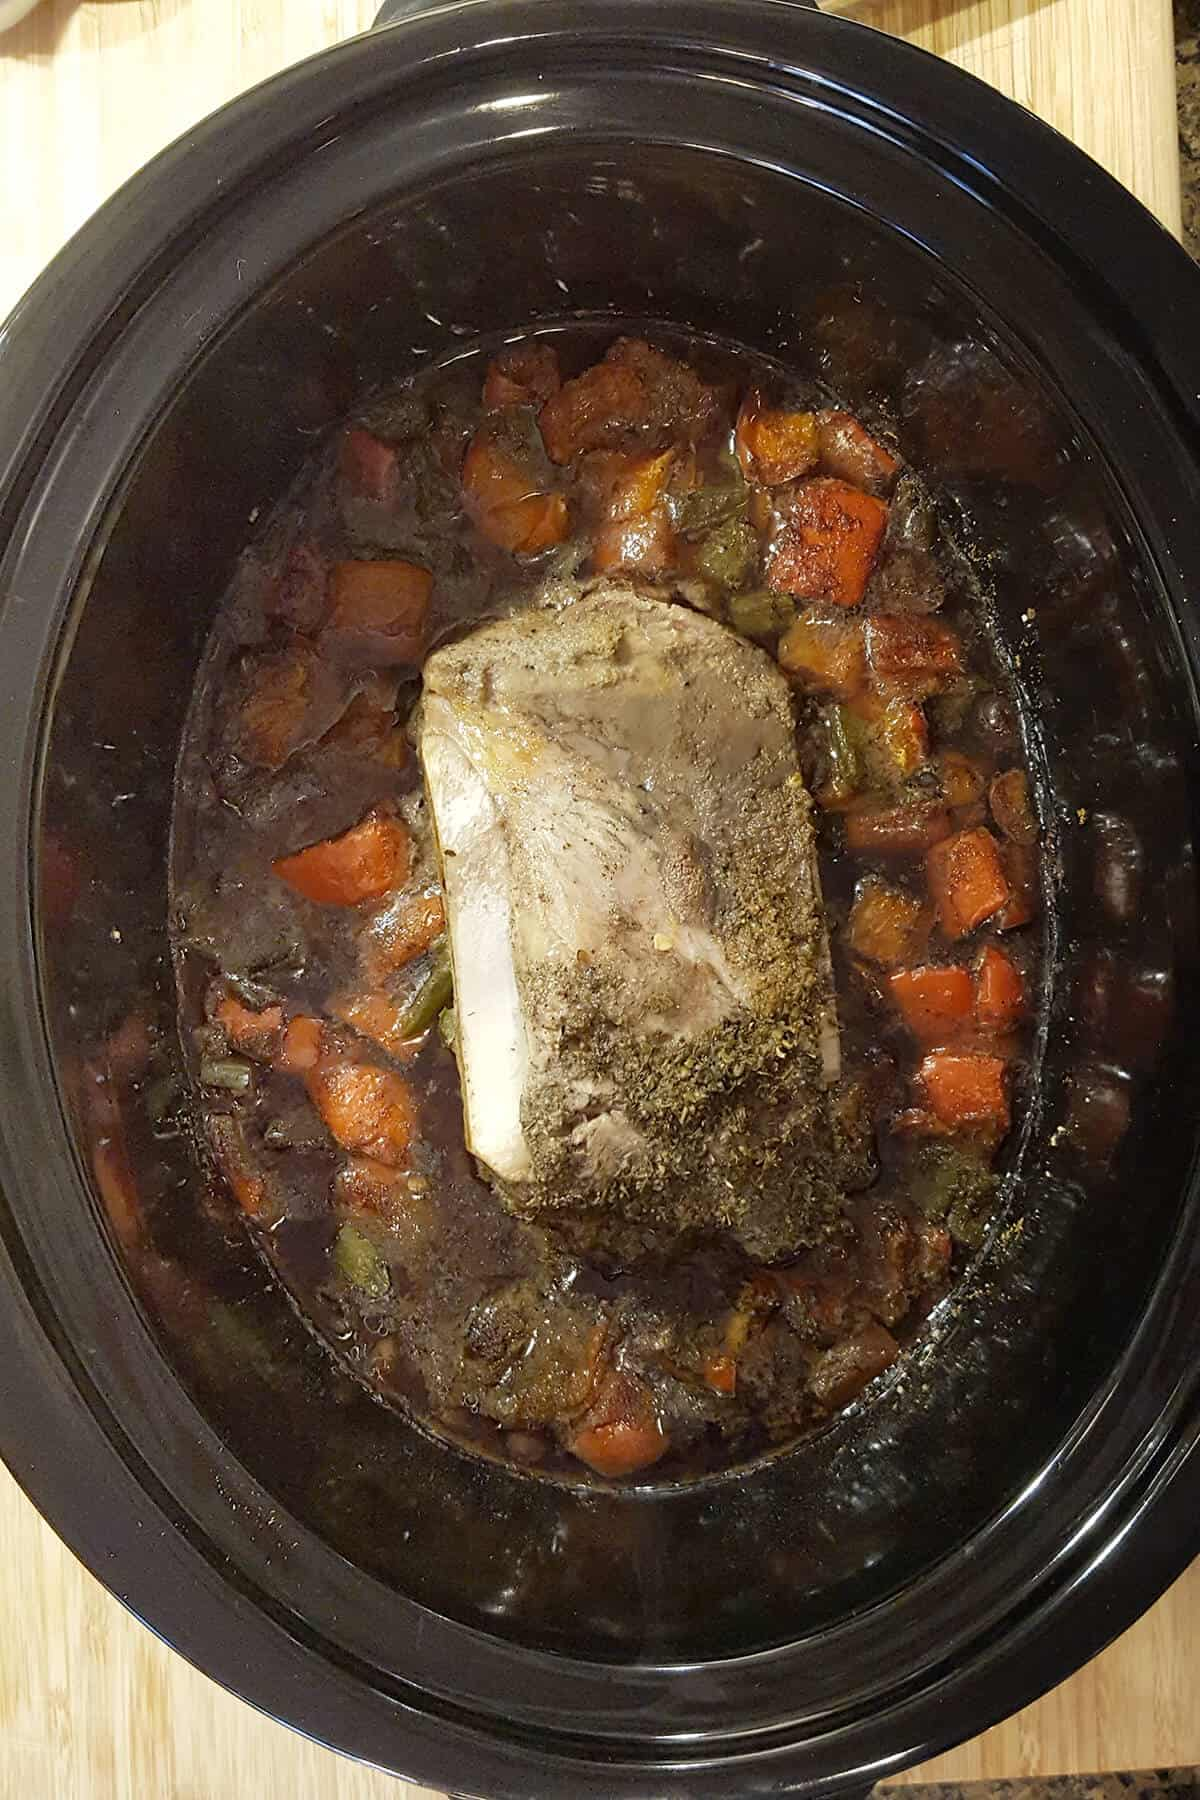 Stew after cooking for 4 hours on high.